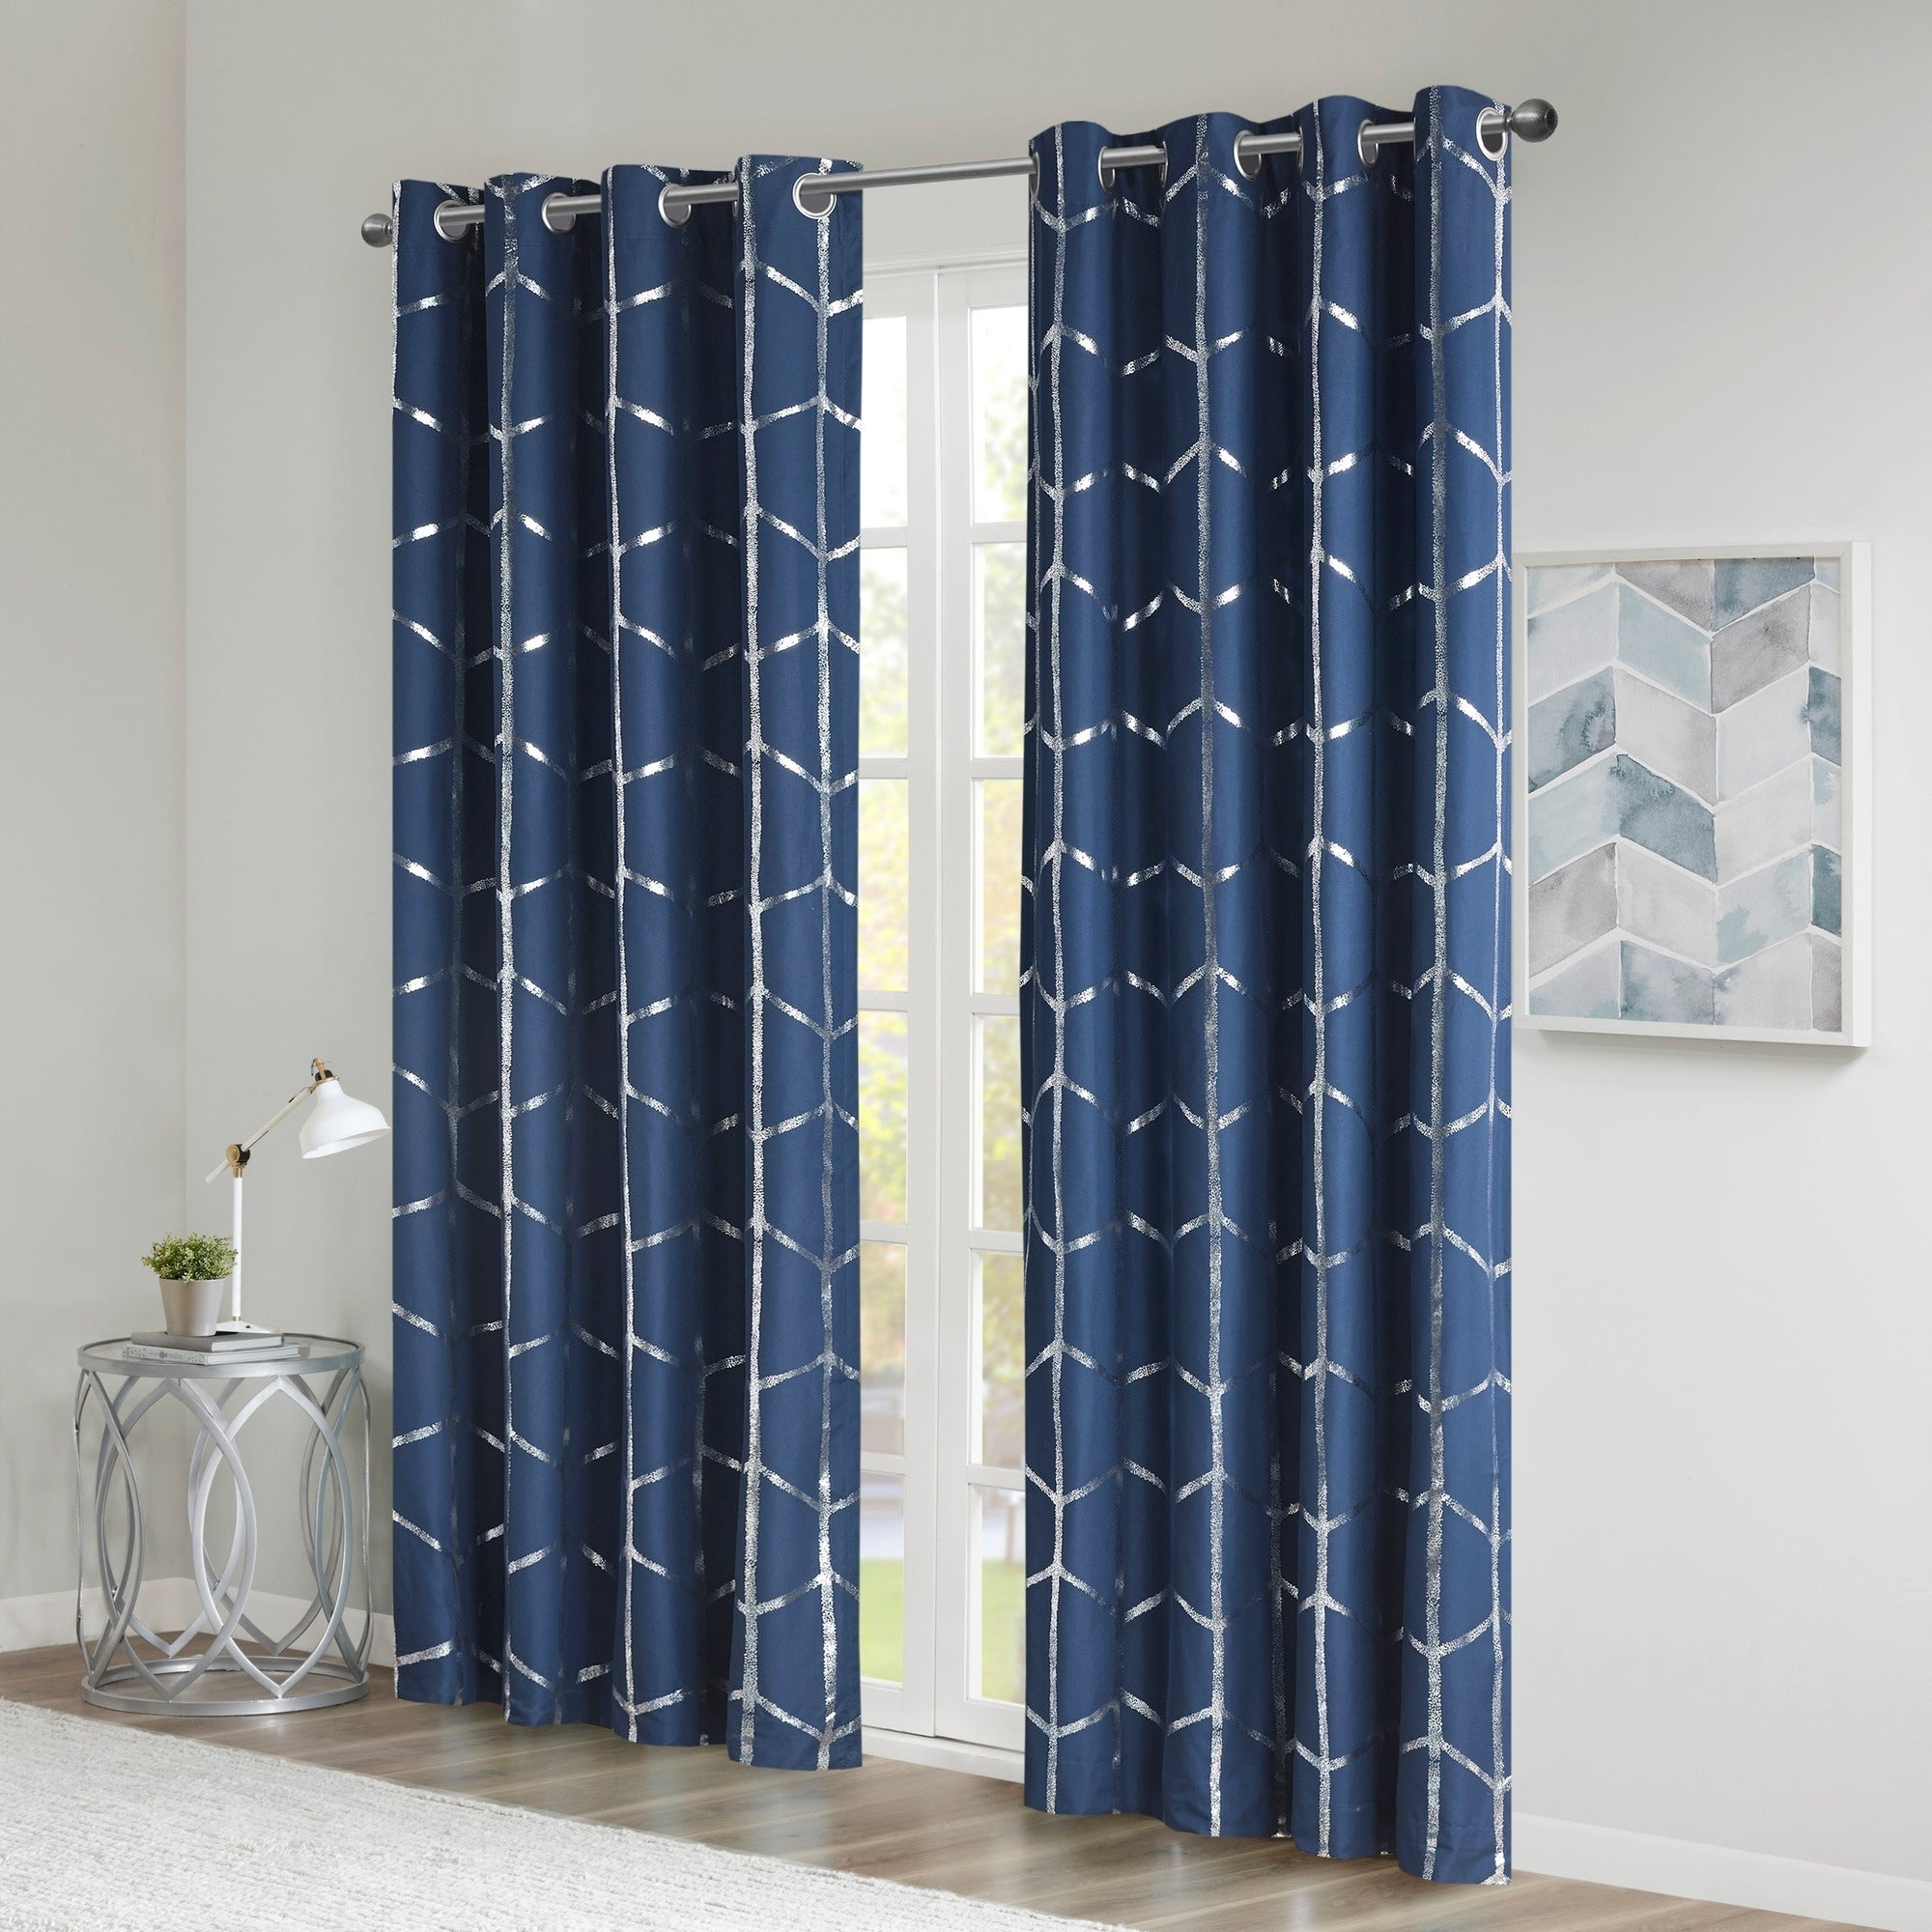 Intelligent Design Khloe Total Blackout Metallic Print Grommet Top Curtain Panel Within Well Known Total Blackout Metallic Print Grommet Top Curtain Panels (View 7 of 20)